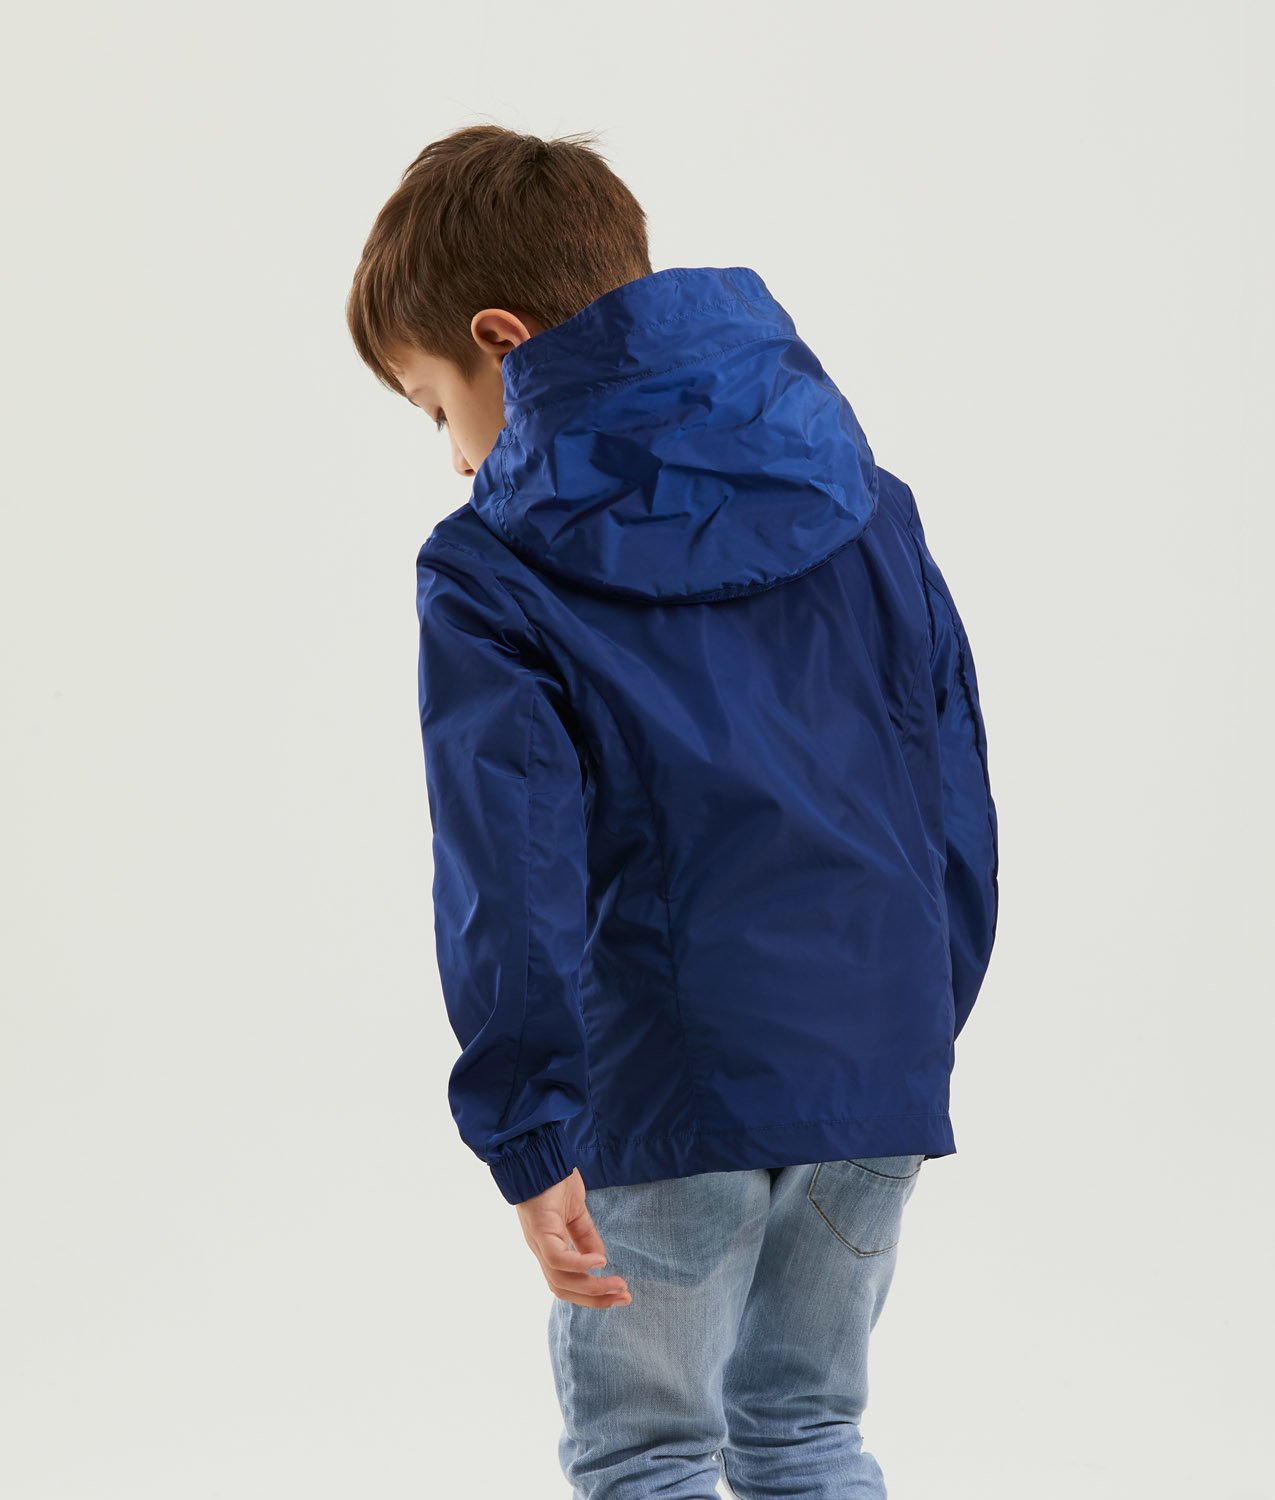 WAVE JR JACKET